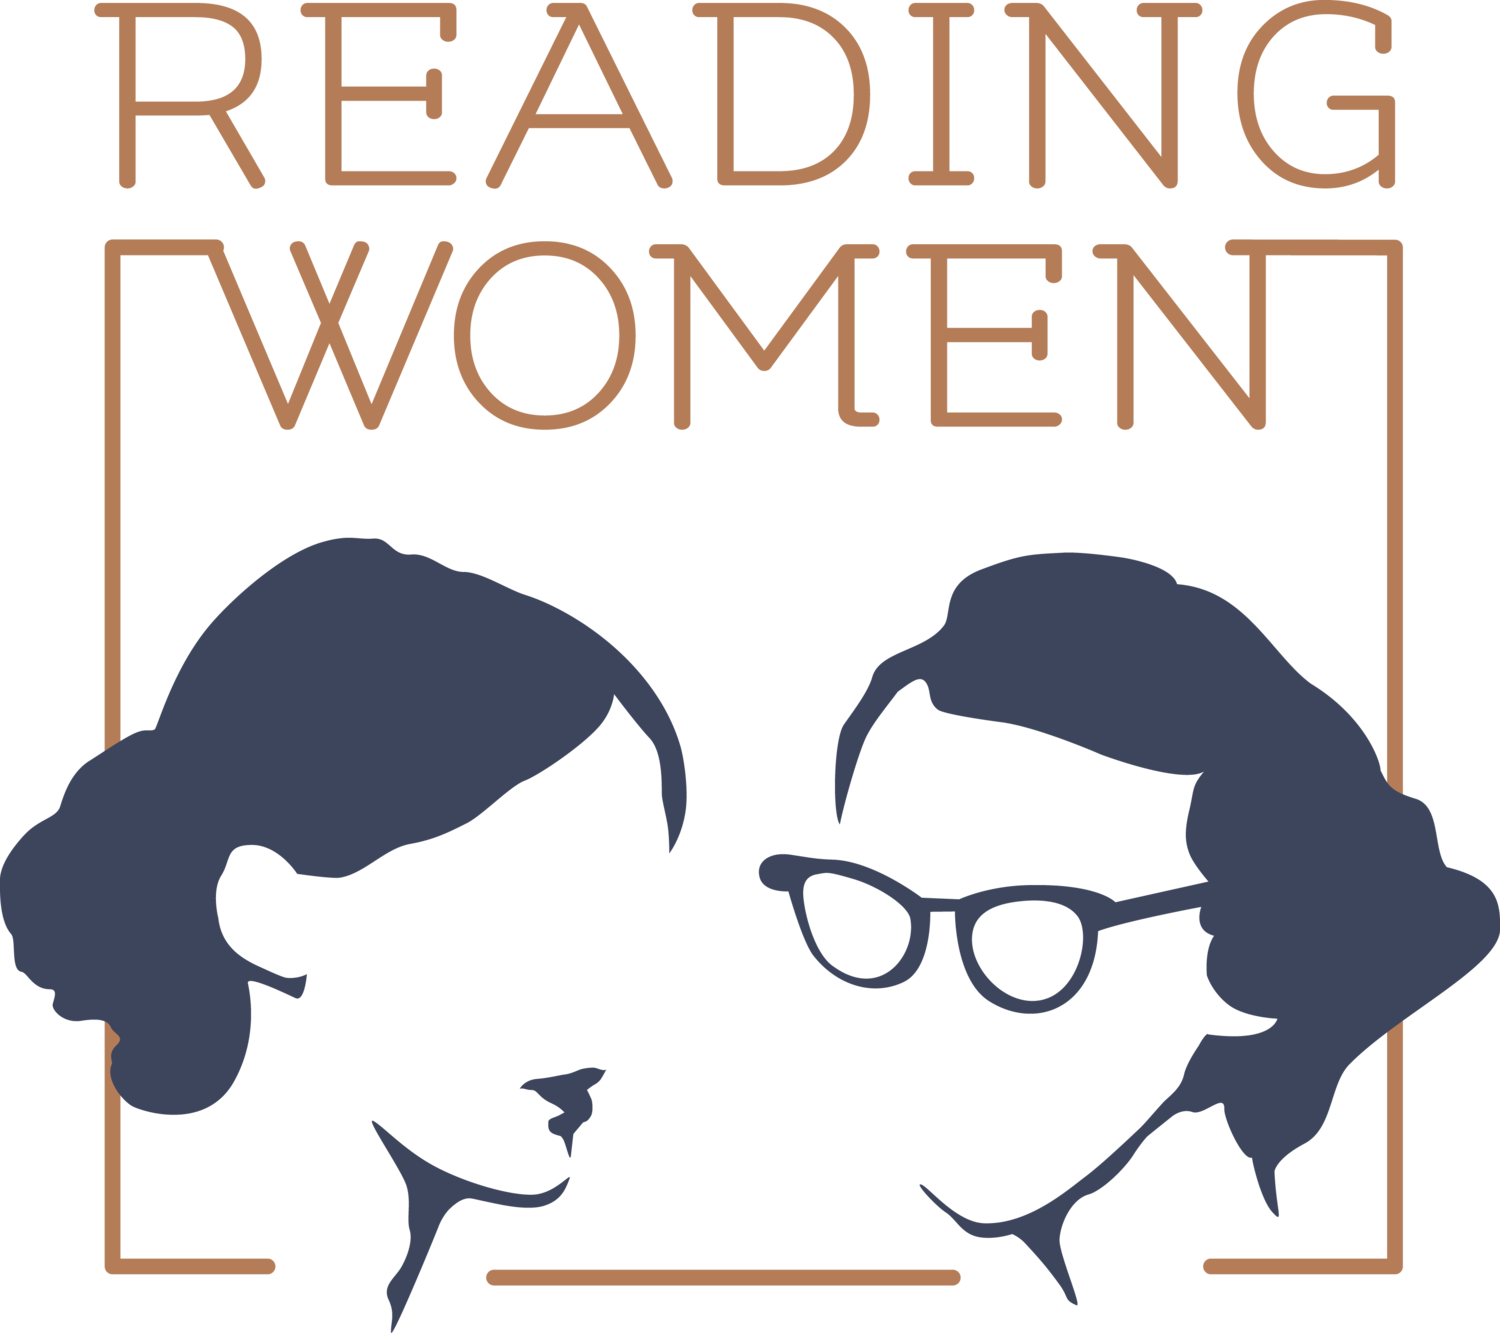 Ep 54 A Place For Us And Purple Hibiscus Reading Women